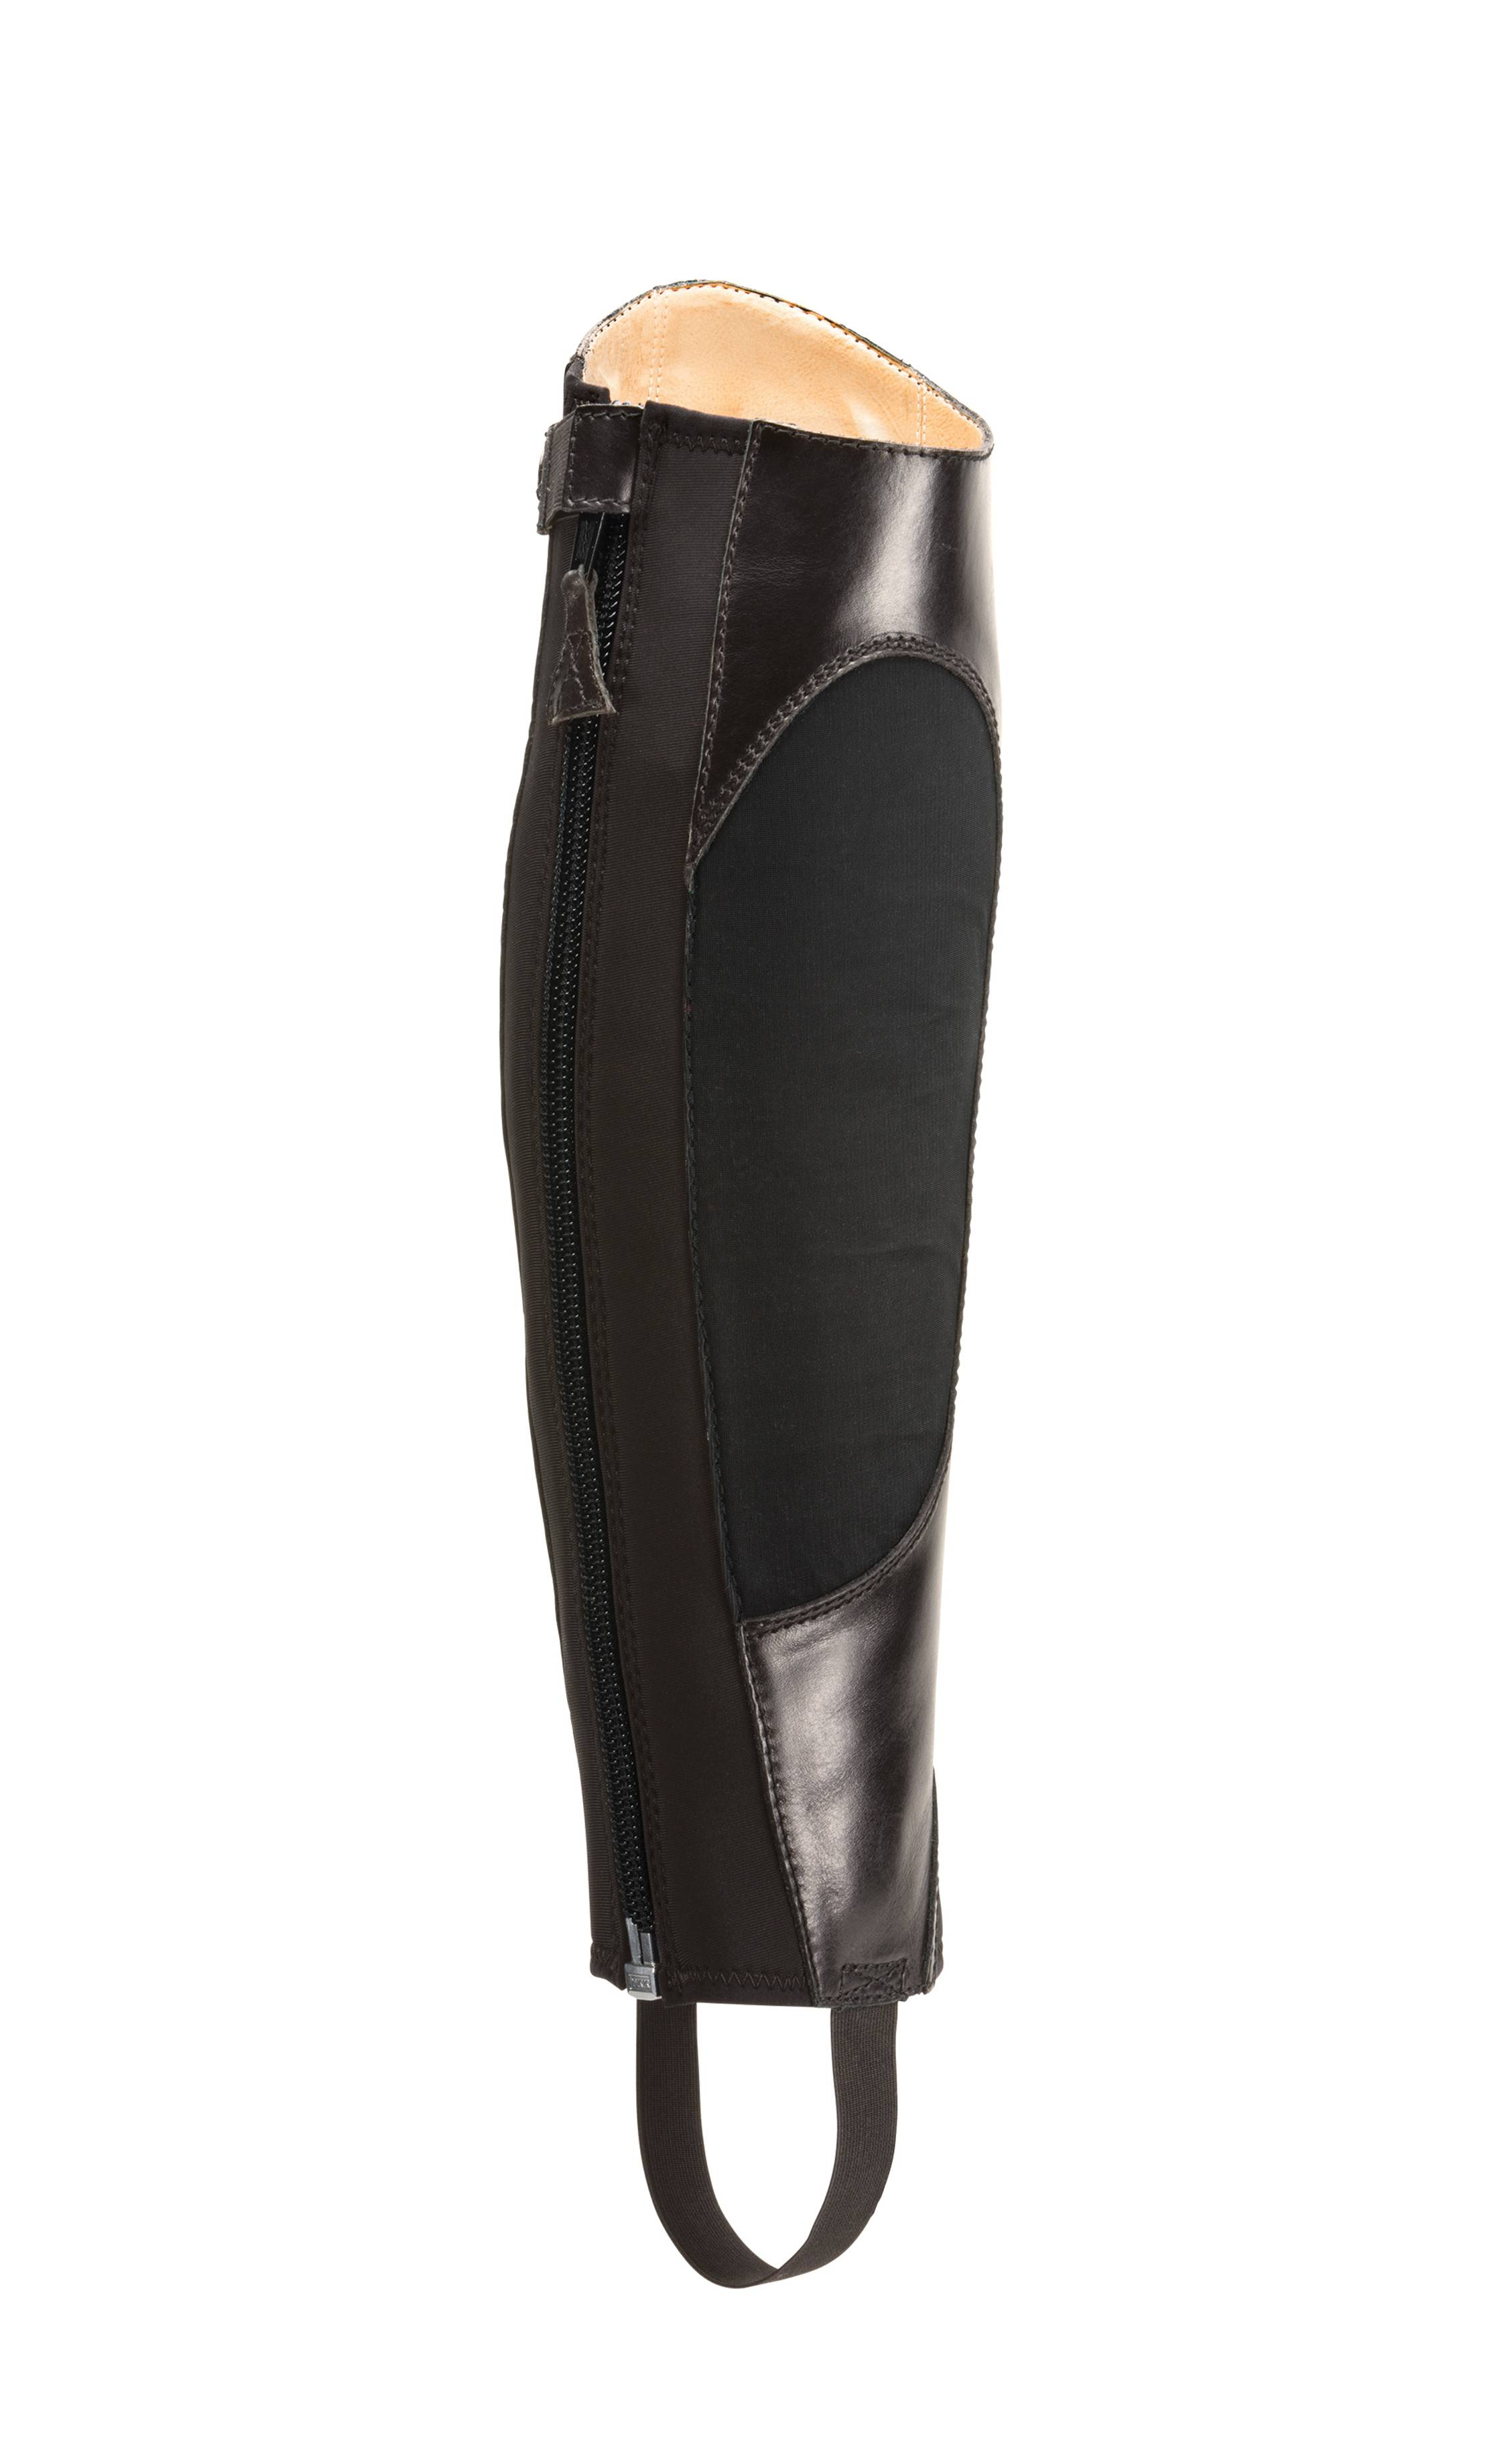 Justin Half Chaps - Chocolate Brown